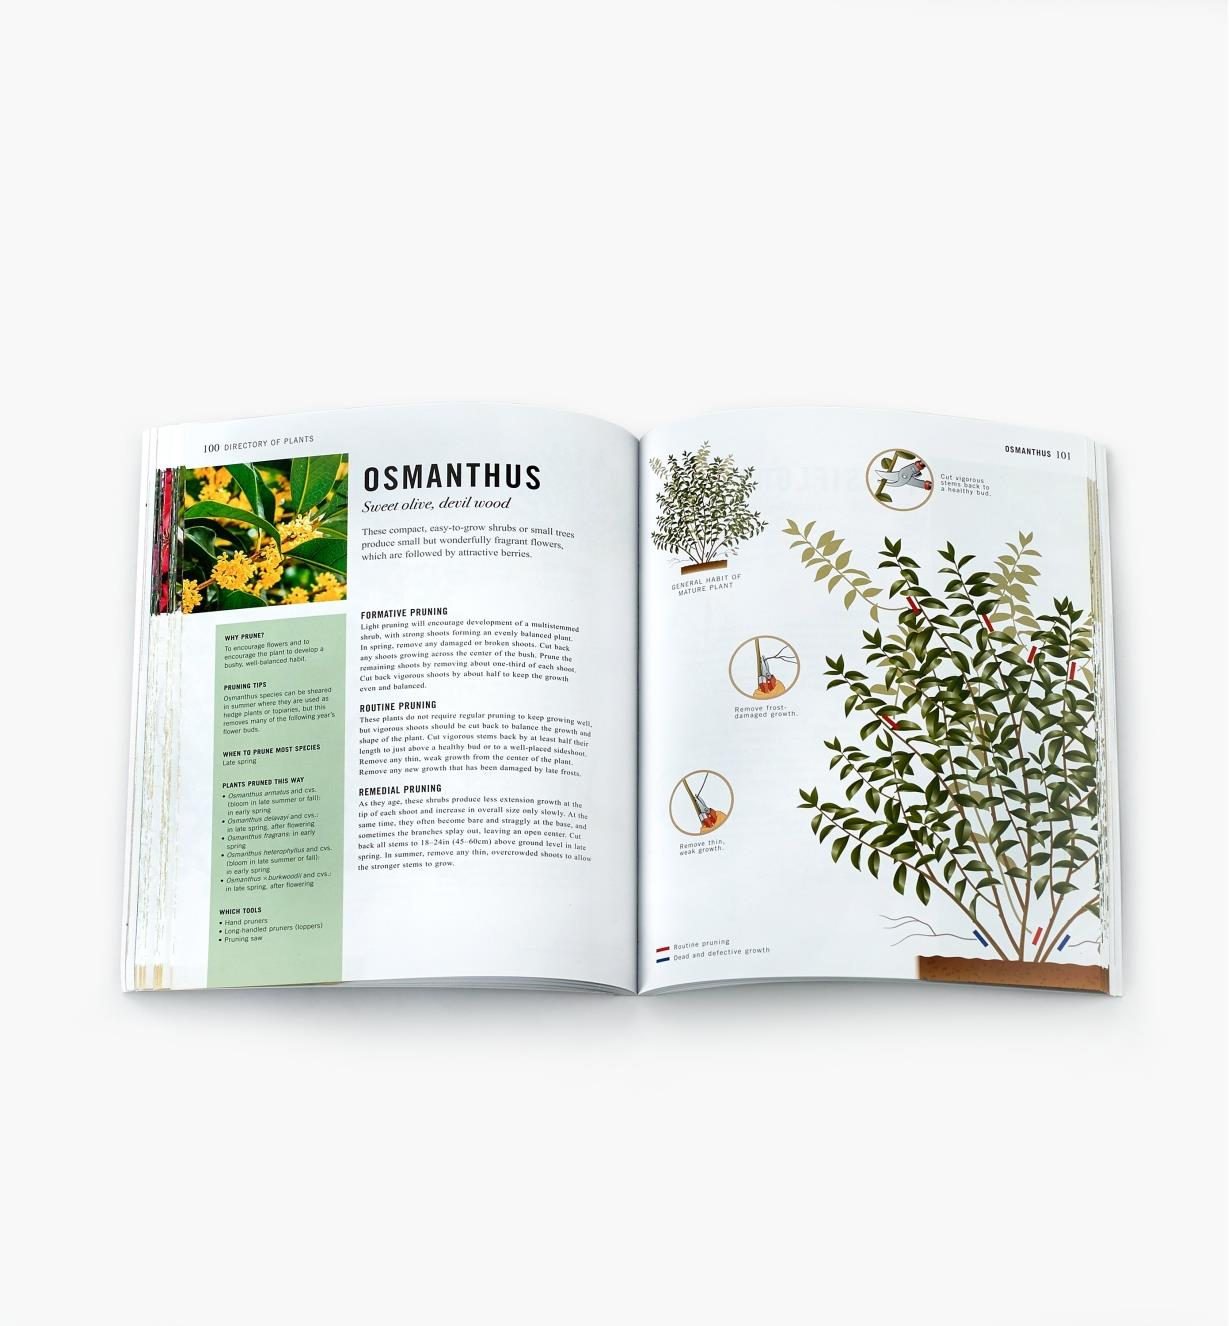 Two-page spread in Pruning Simplified with text and diagrams showing how to prune osmanthus shrubs